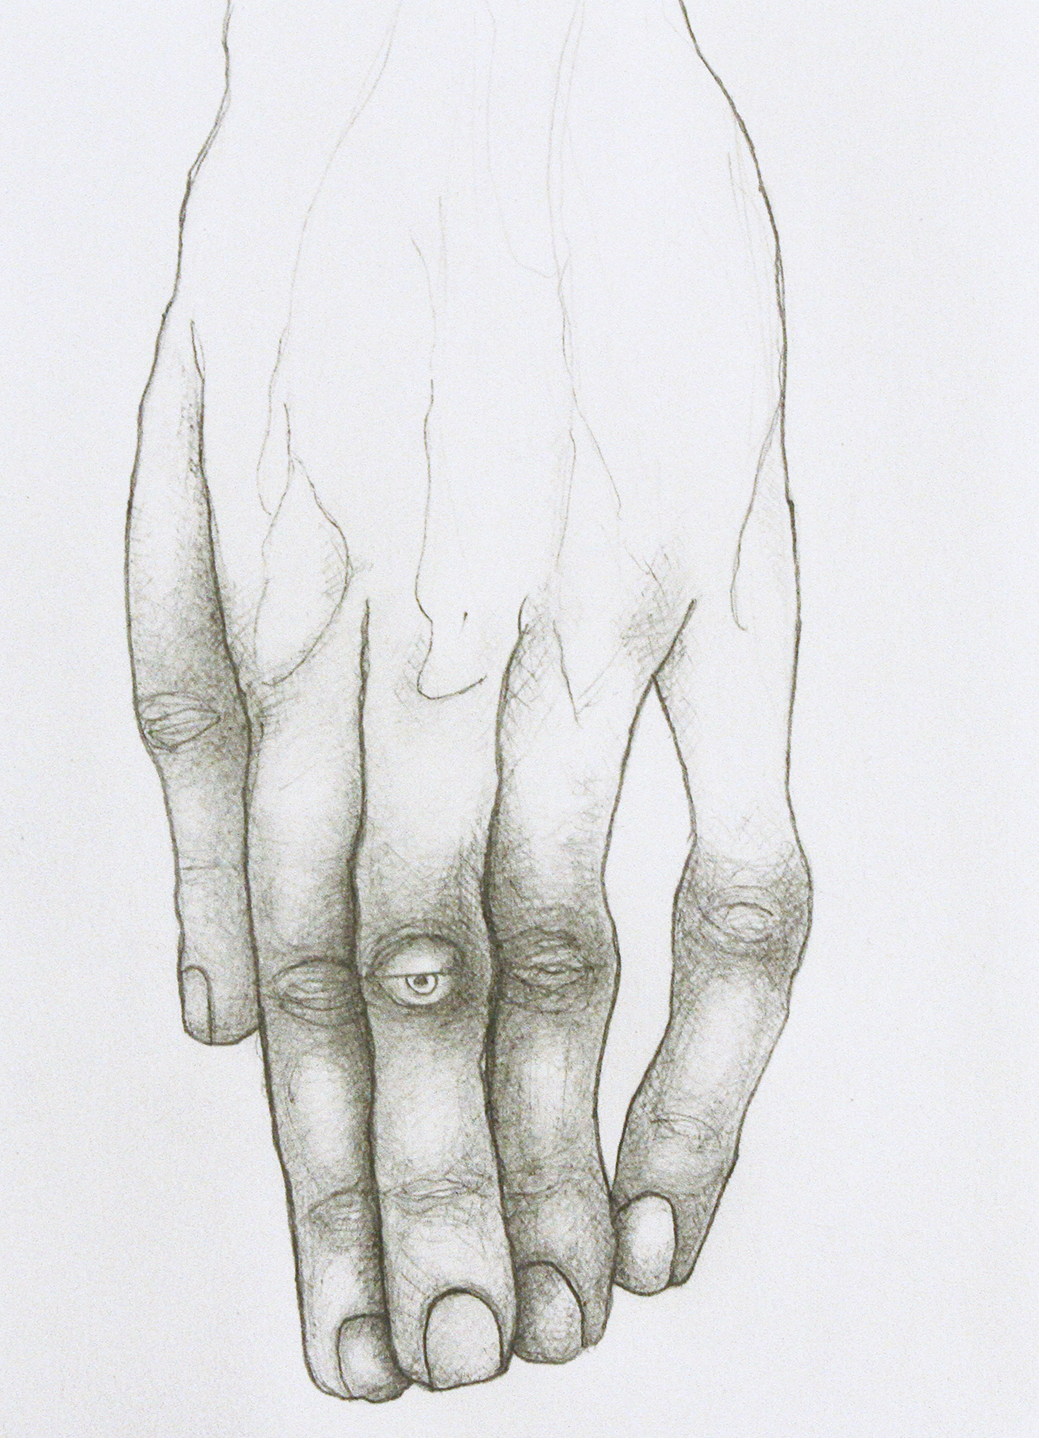 Untitled (Eyeball Knuckle)